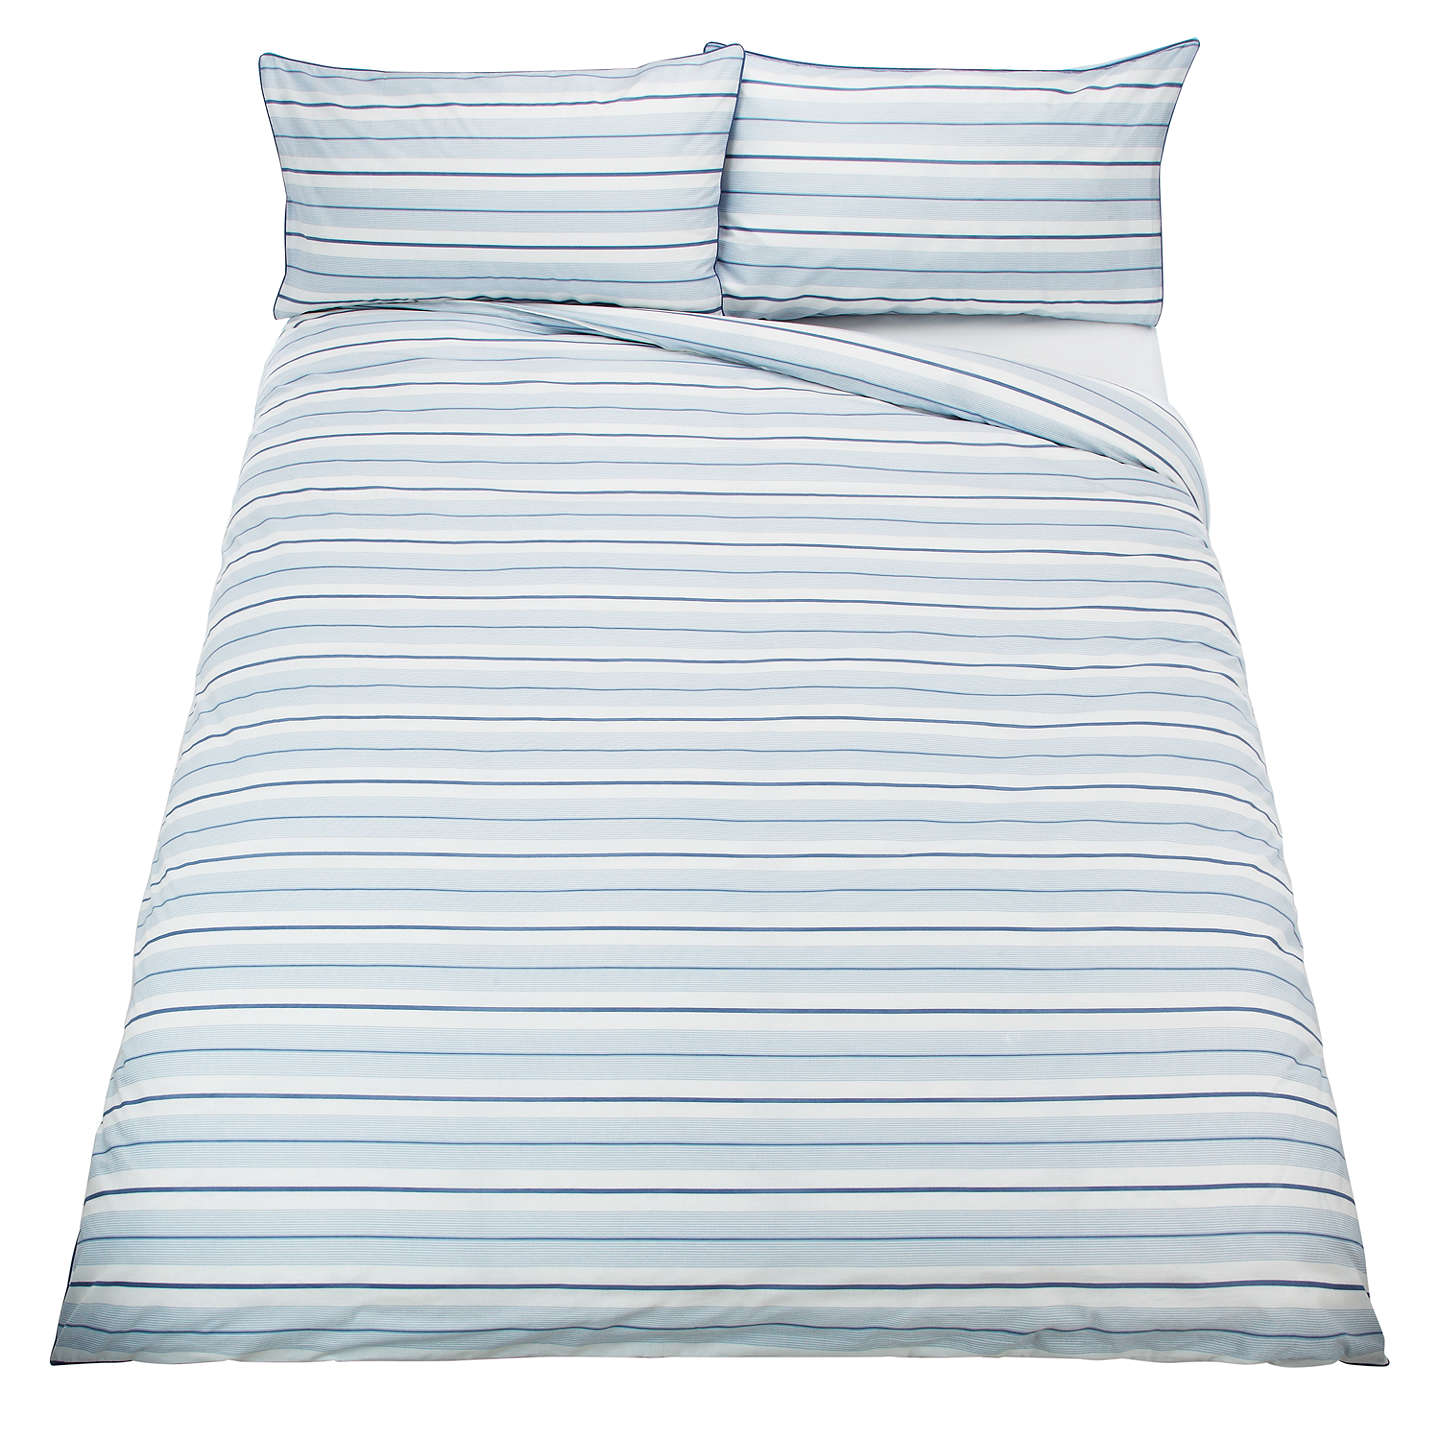 BuyJohn Lewis Fine Stripe Duvet Cover and Pillowcase Set, Blue, Single Online at johnlewis.com